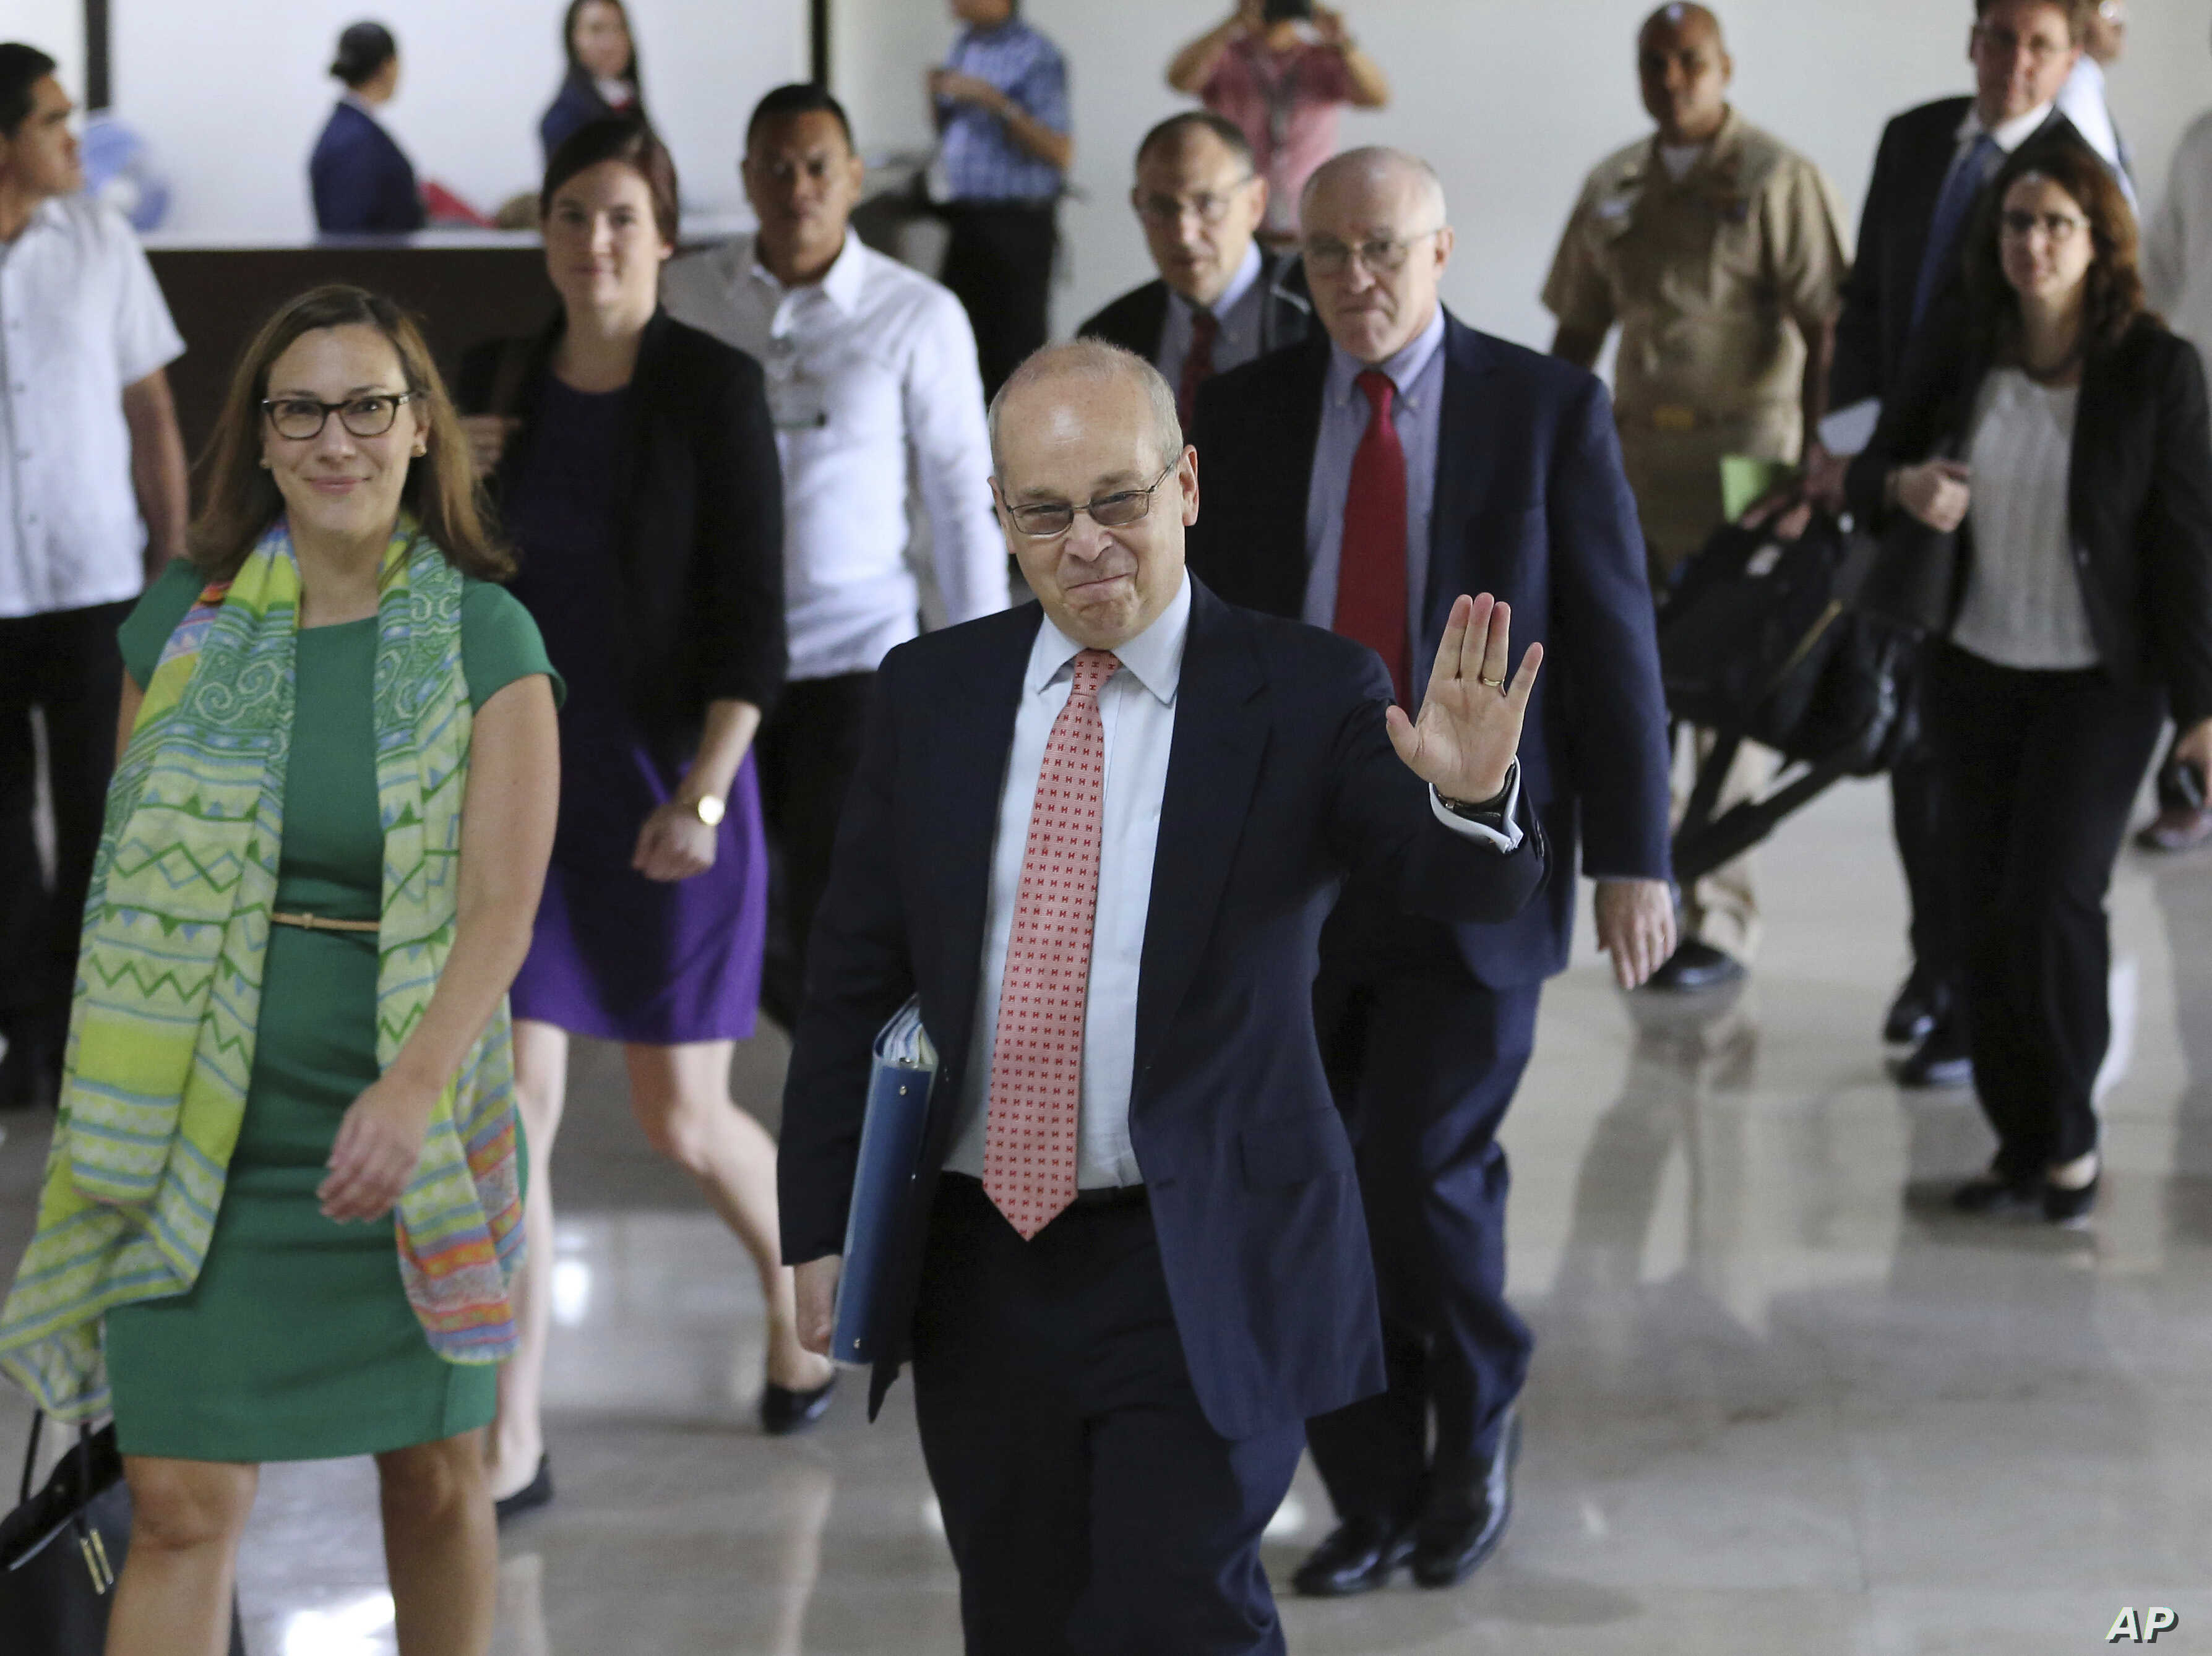 U.S. Assistant Secretary of State for East Asian and Pacific Affairs Daniel Russel, center, waves to reporters before meeting with officials at the Department of Foreign Affairs in suburban Pasay, south of Manila, Philippines, Oct. 24, 2016.